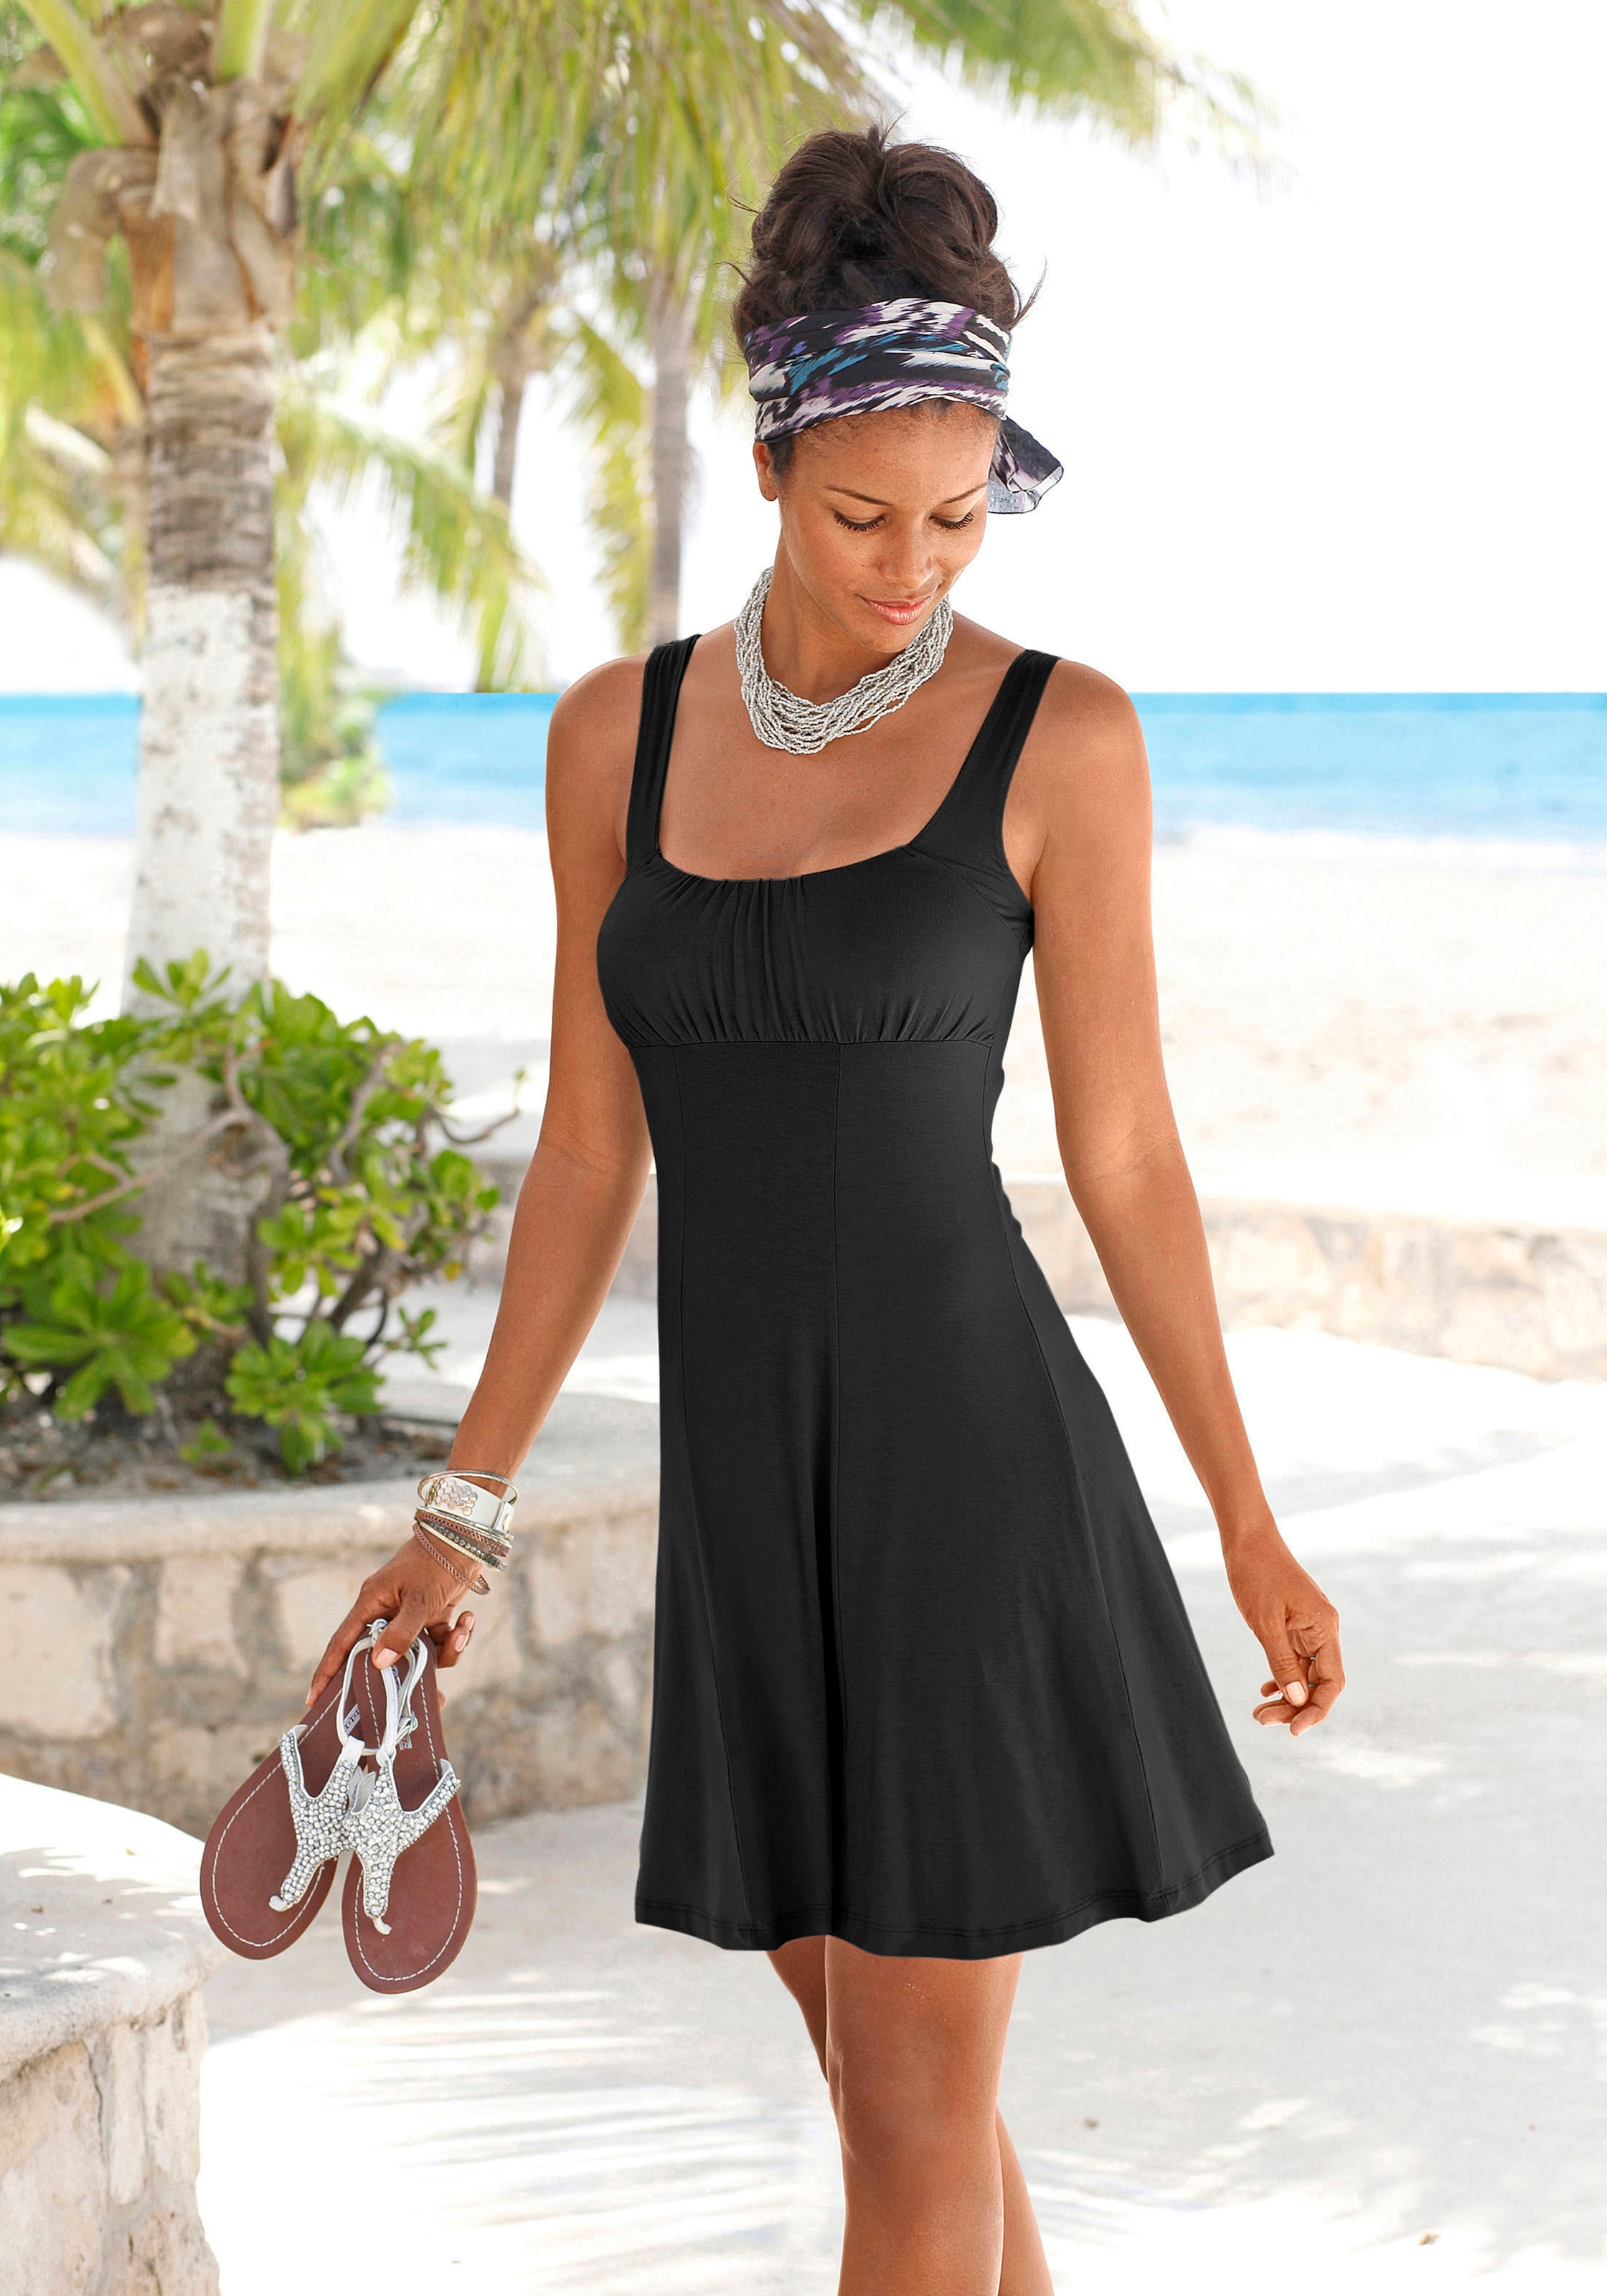 Image of Beachtime Bustierkleid